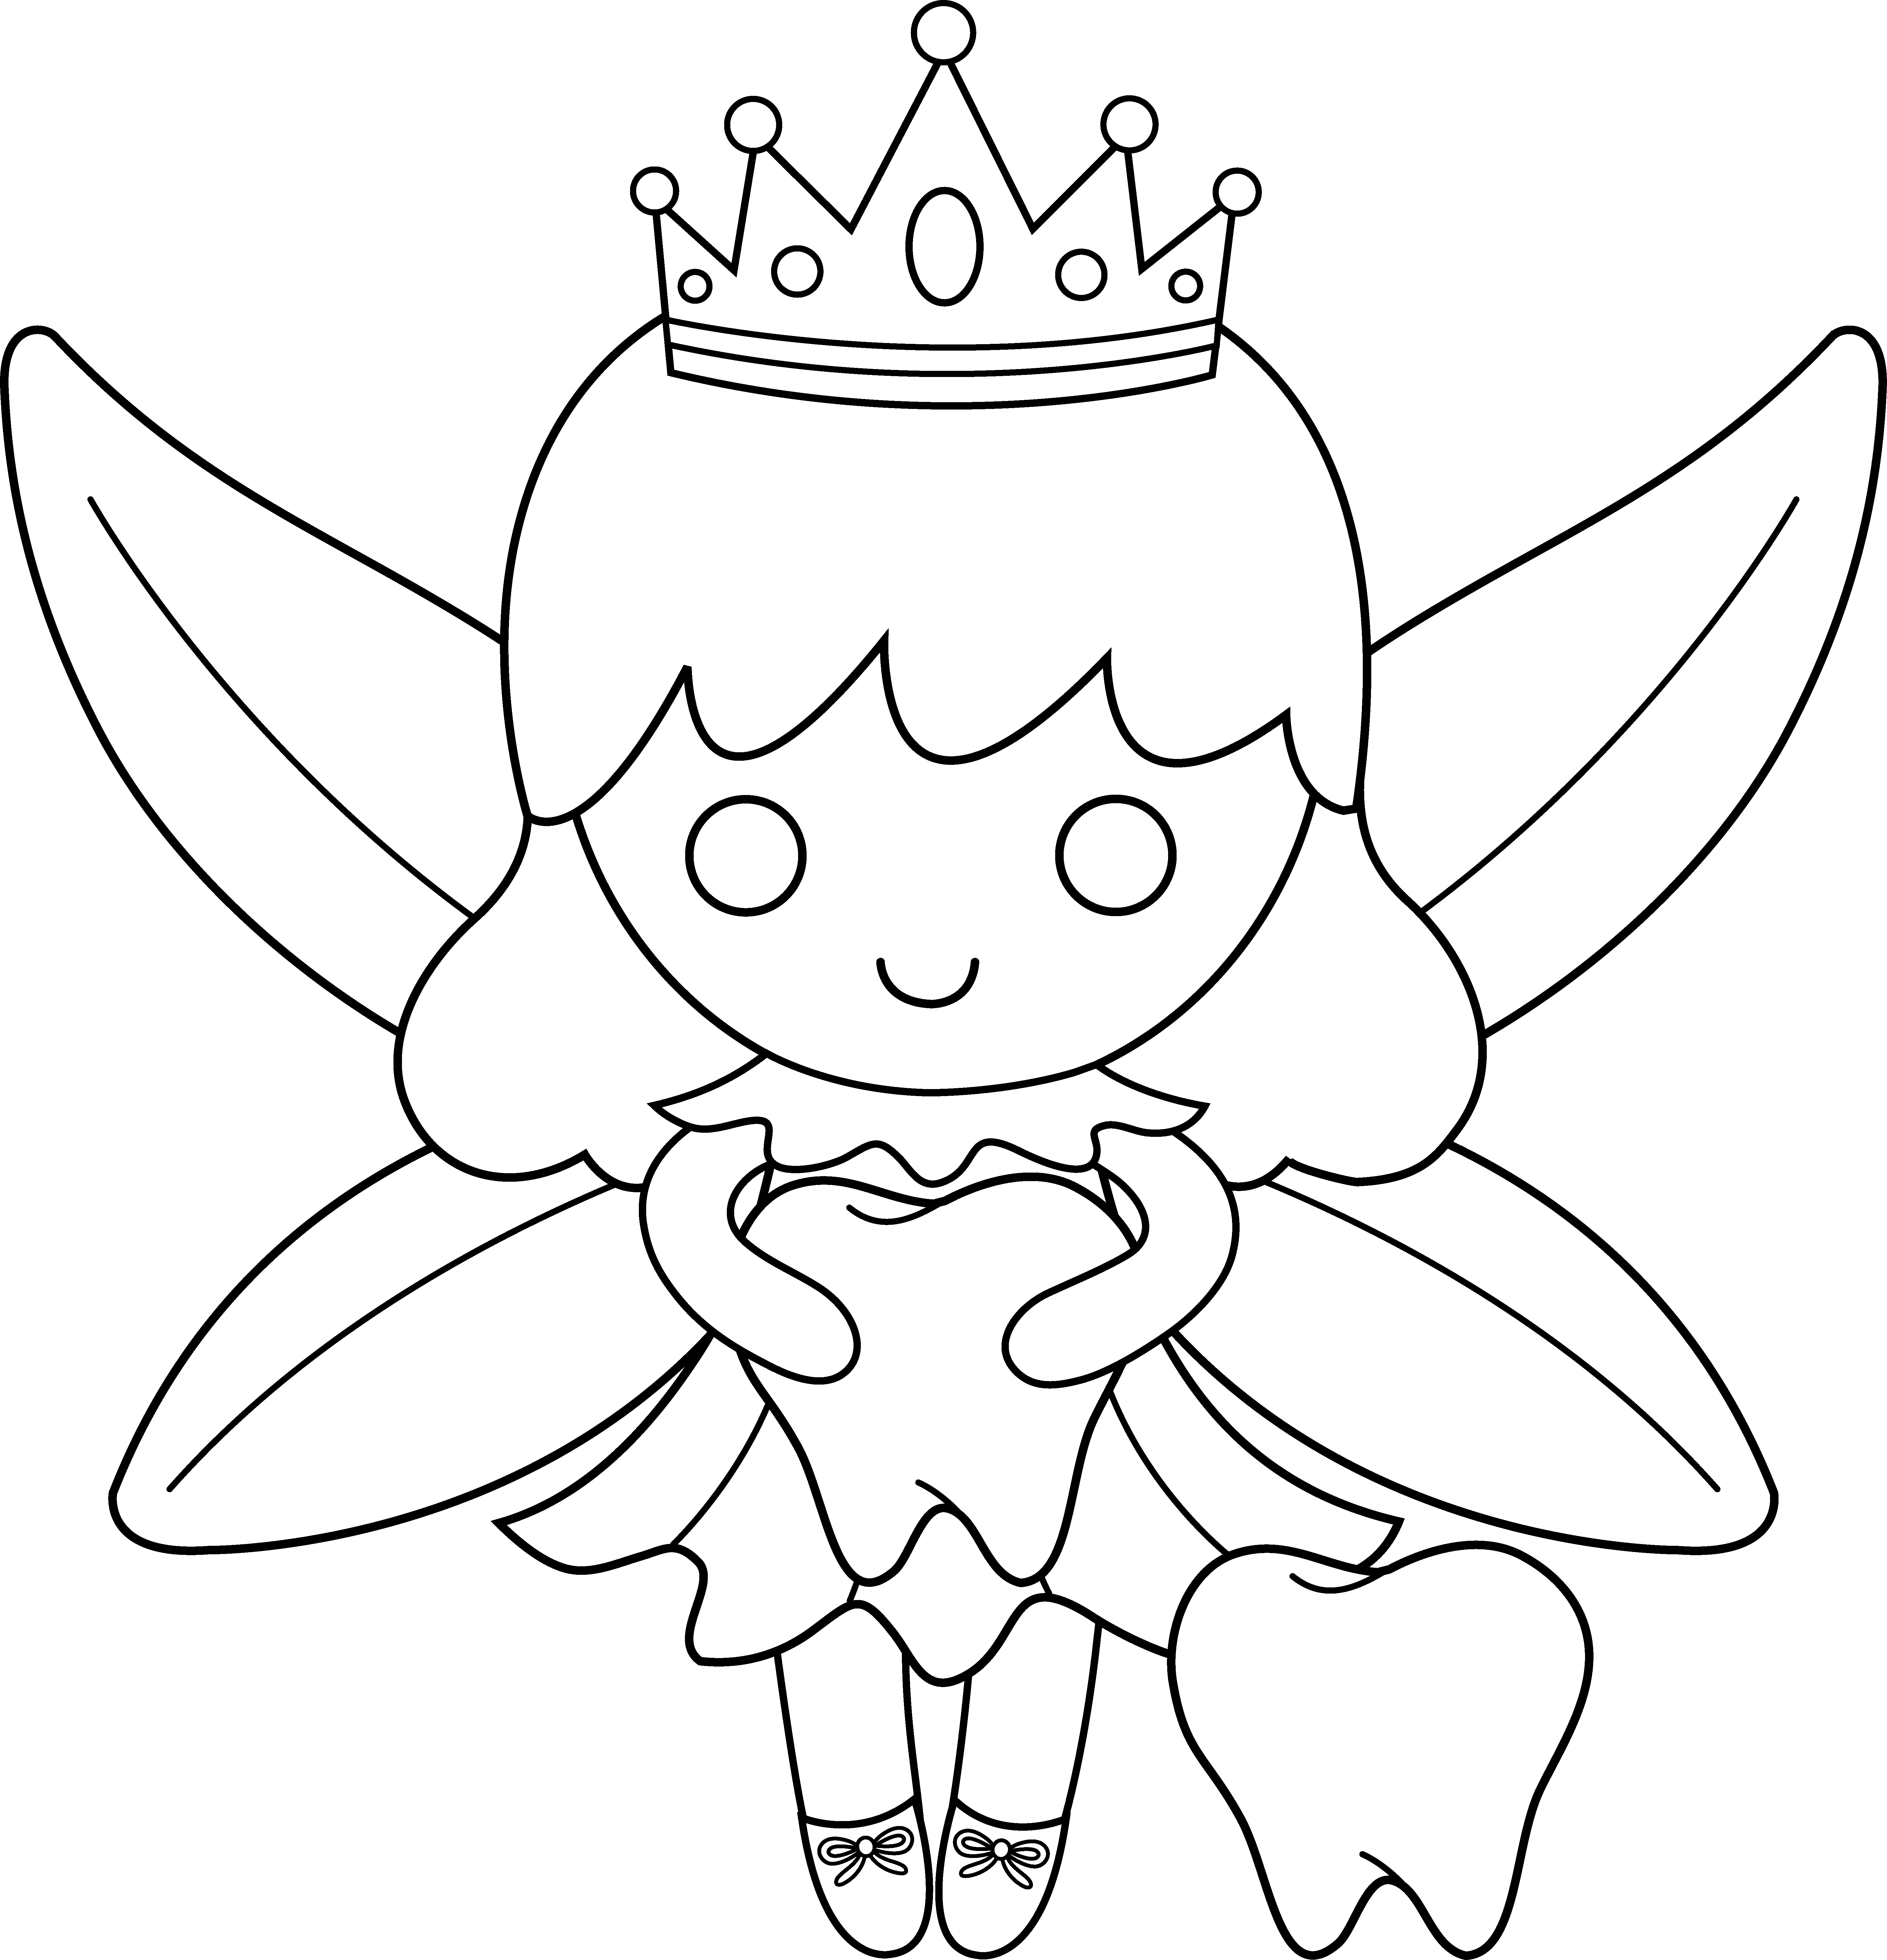 Faerie drawing black and white. Cute colorable tooth fairy